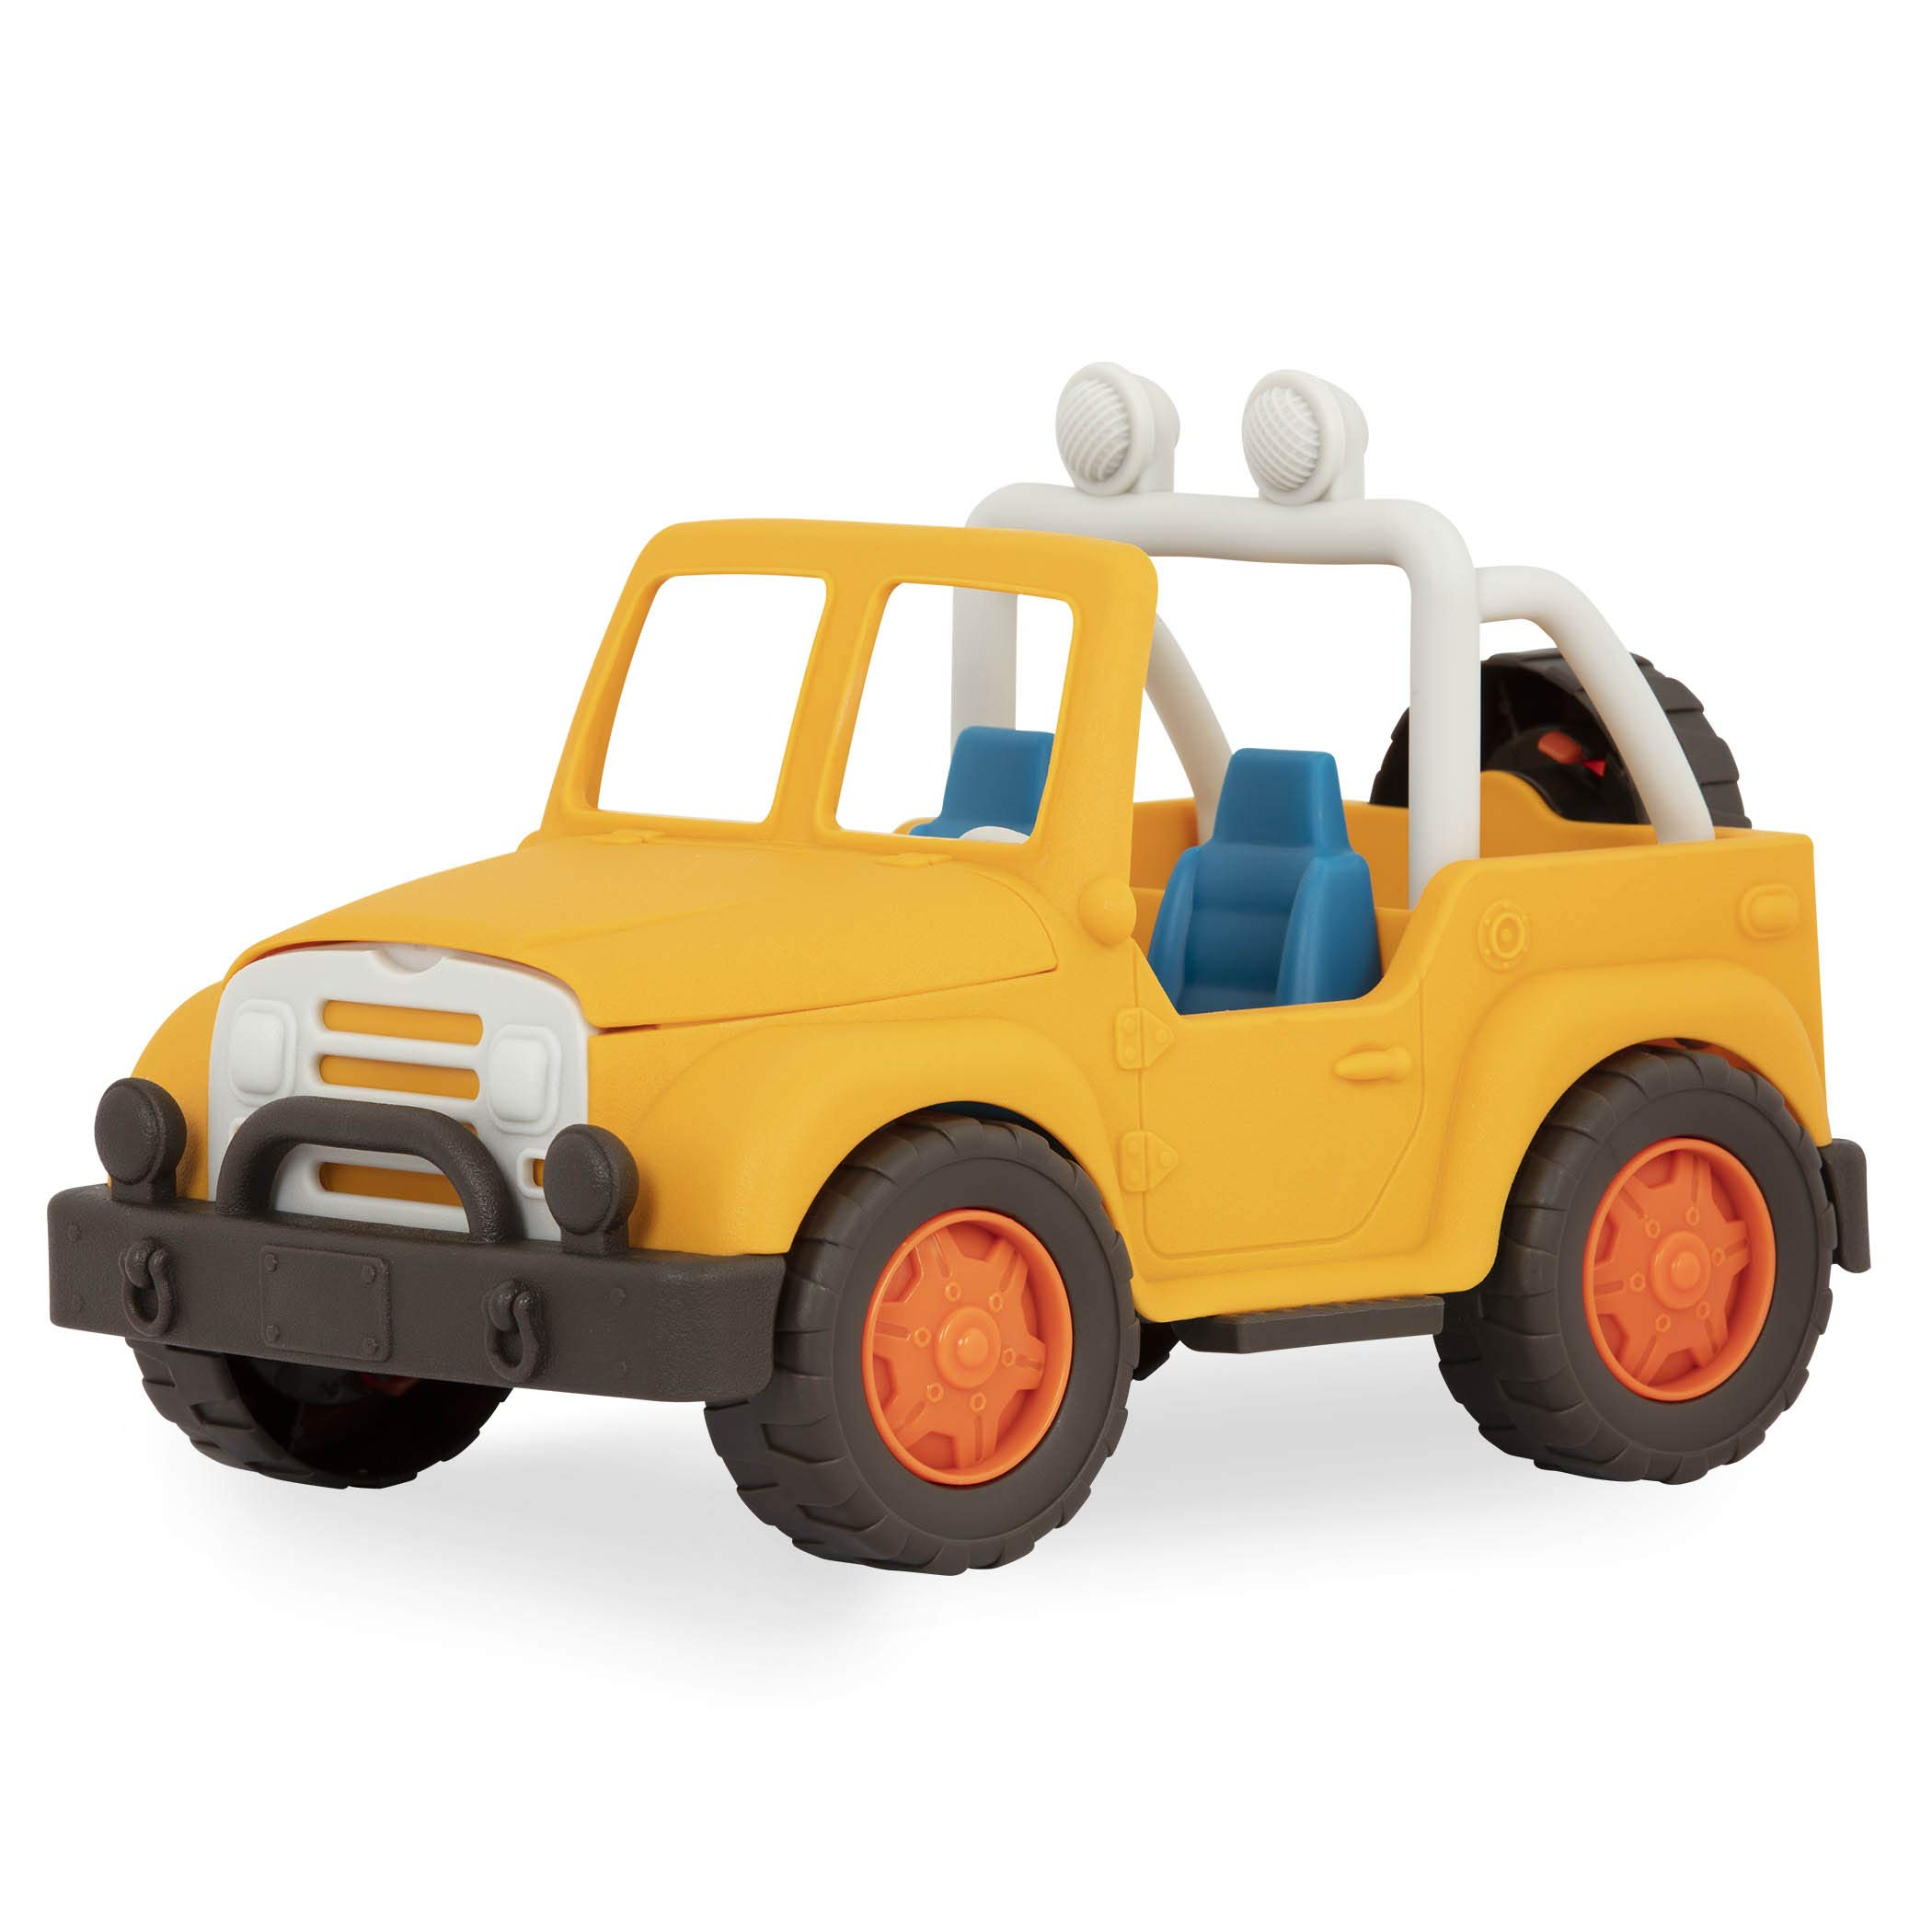 Wonder Wheels by Battat – 4 X 4 – Yellow Off-Road Toy Truck with Spare Tire for Toddlers Age 1 & Up – 100% Recyclable, VE1013Z, Multi